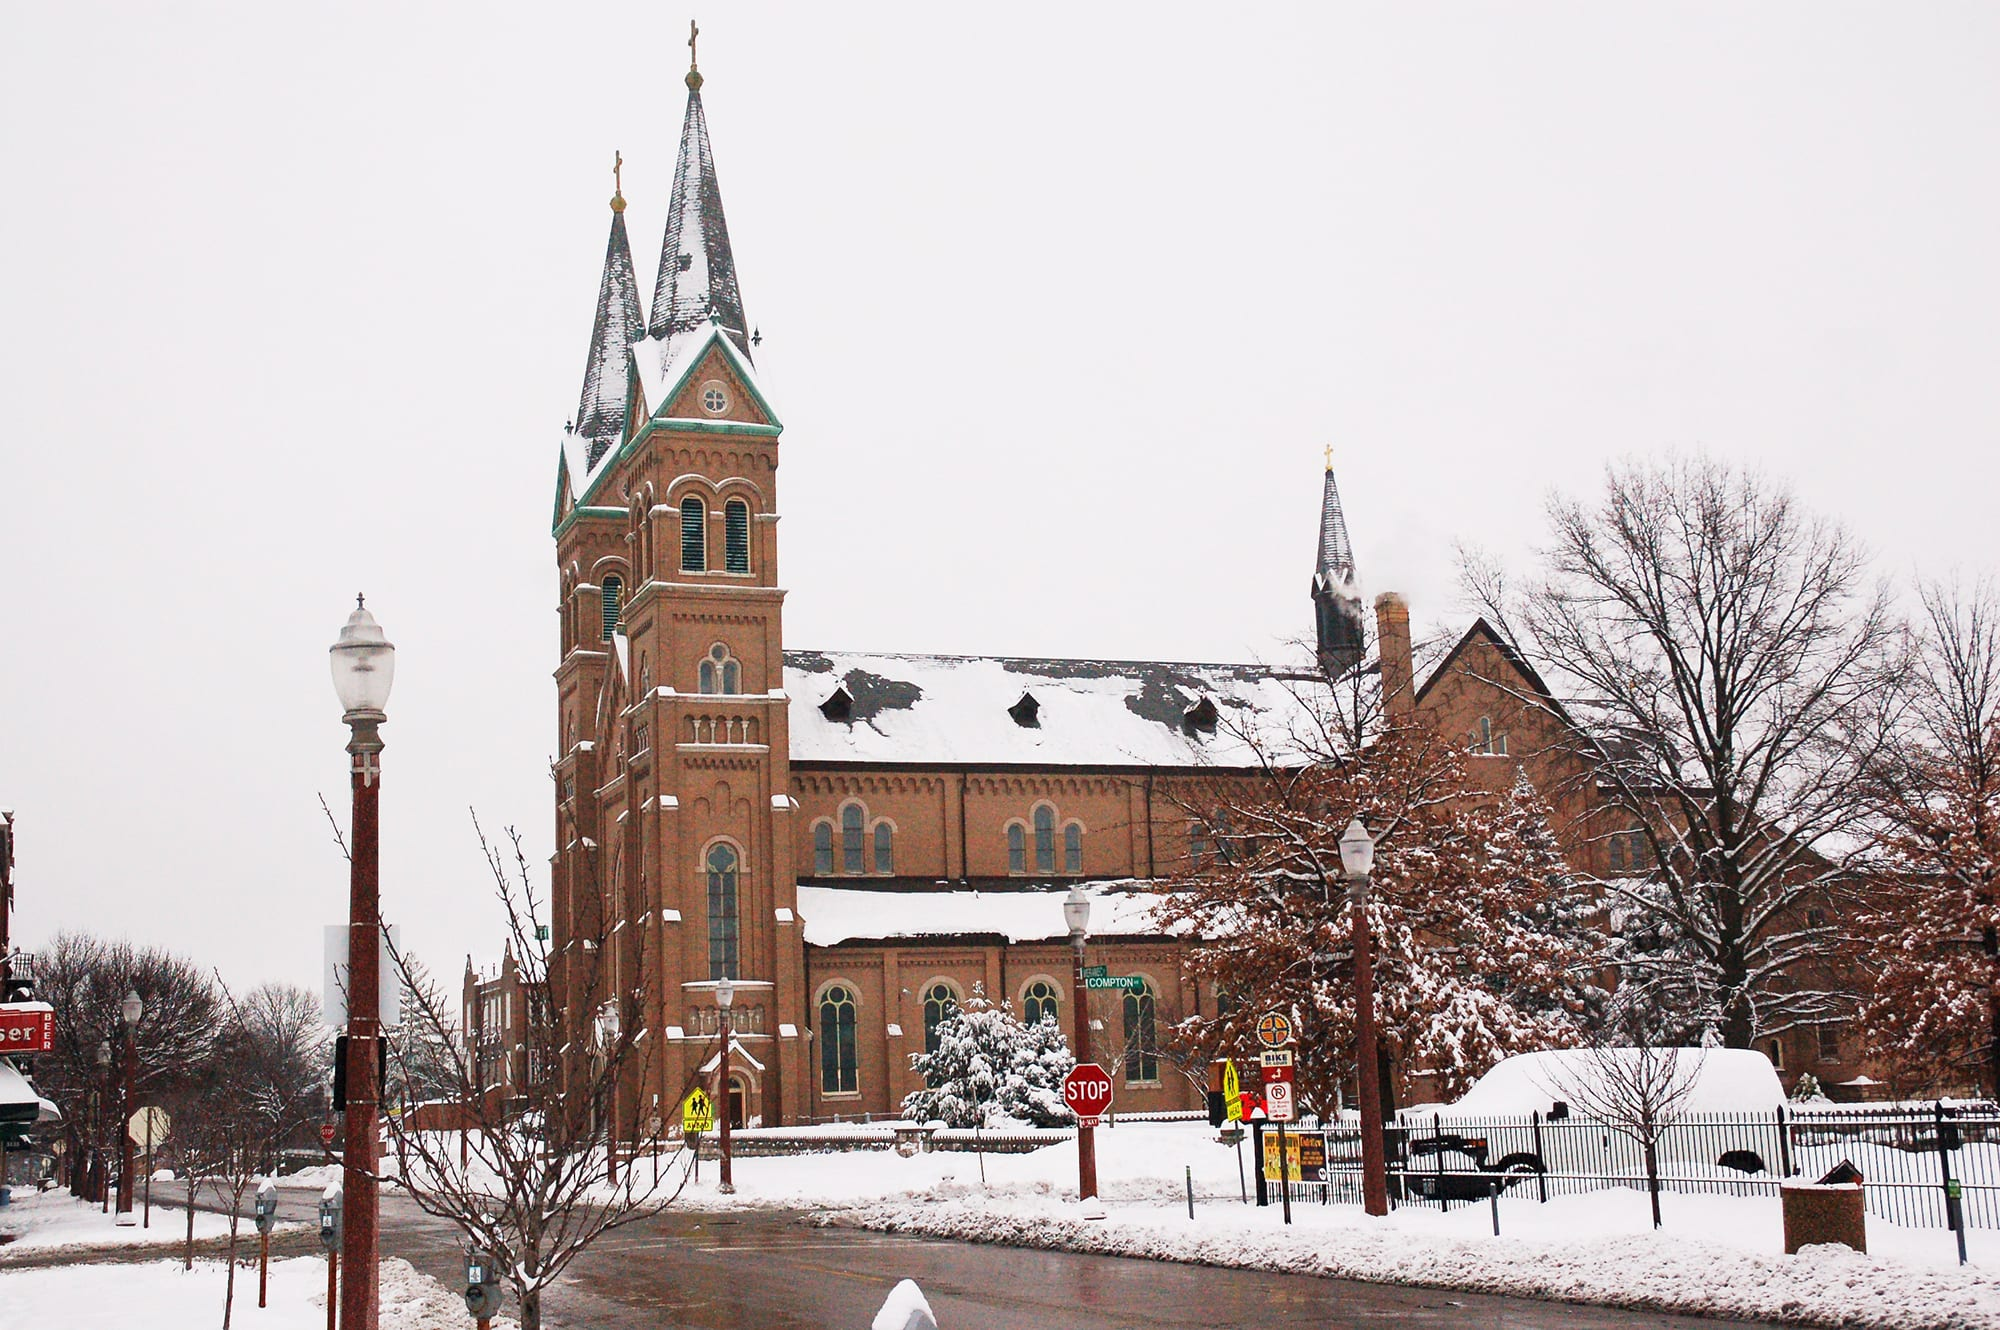 St. Anthony of Padua in the snow.